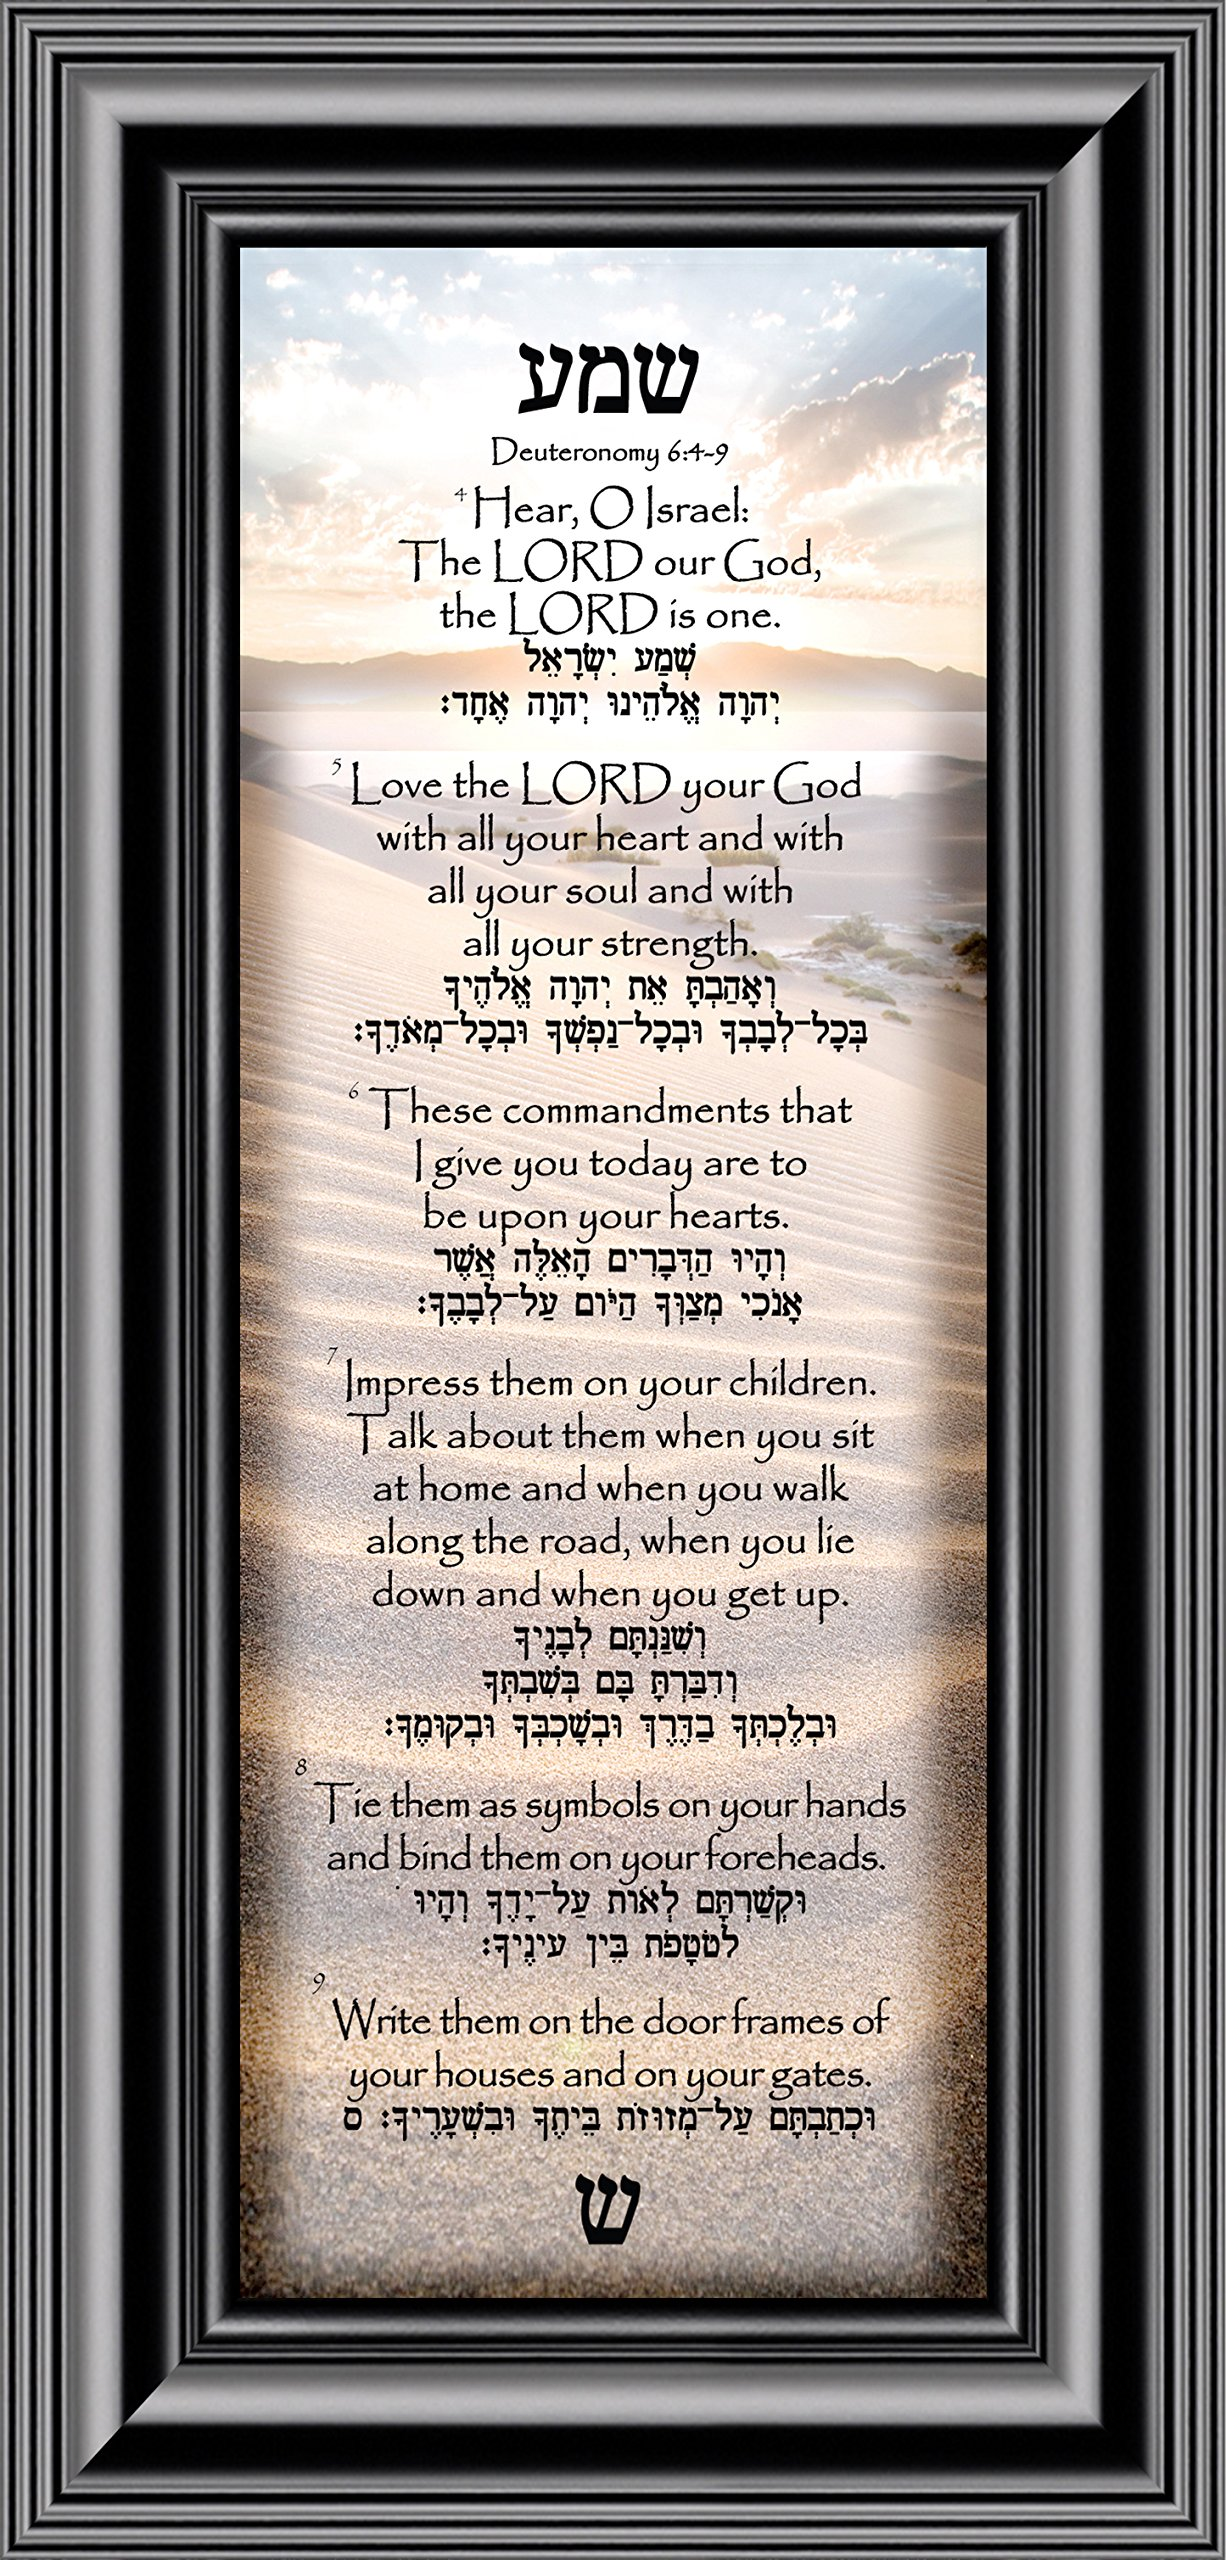 Shema Prayer, Jewish Prayer for the Home, Deuteronomy 6:4-9 with Hebrew translation, 6x12 7749B